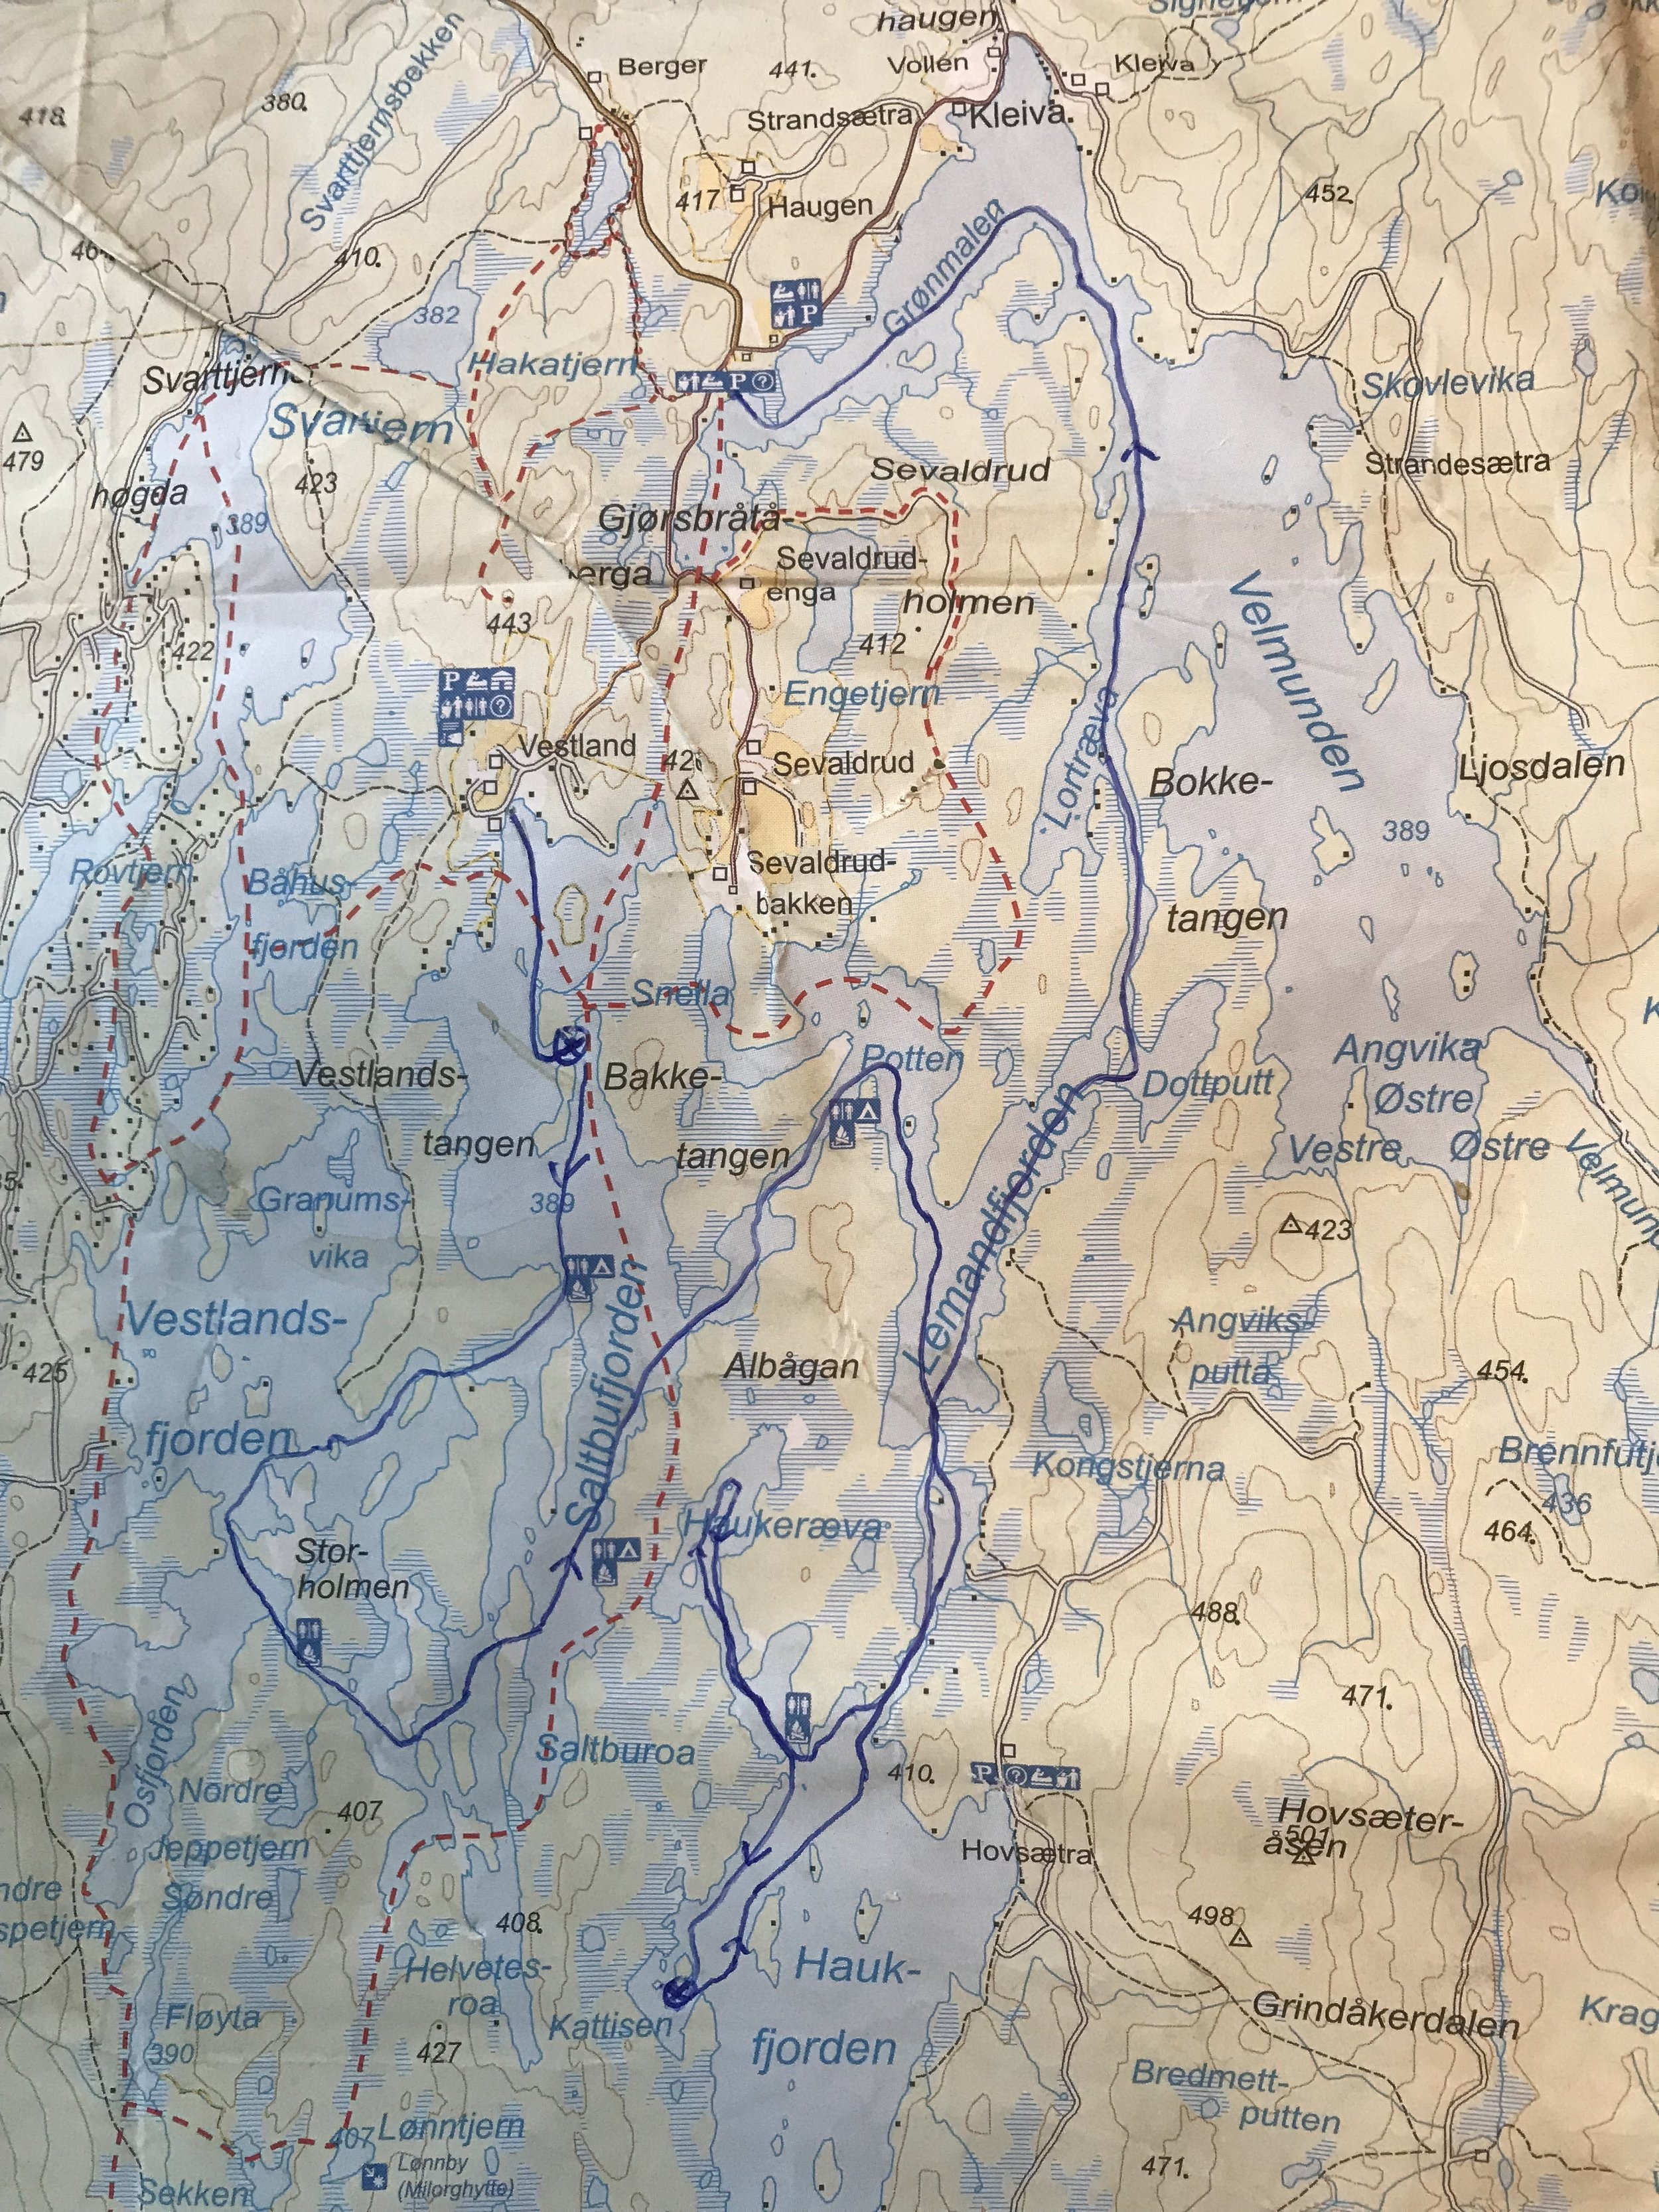 My route in Fjorda. The stars mark where I tented. The area is sometimes named Velmunden, after the largest lake in the lake-system.